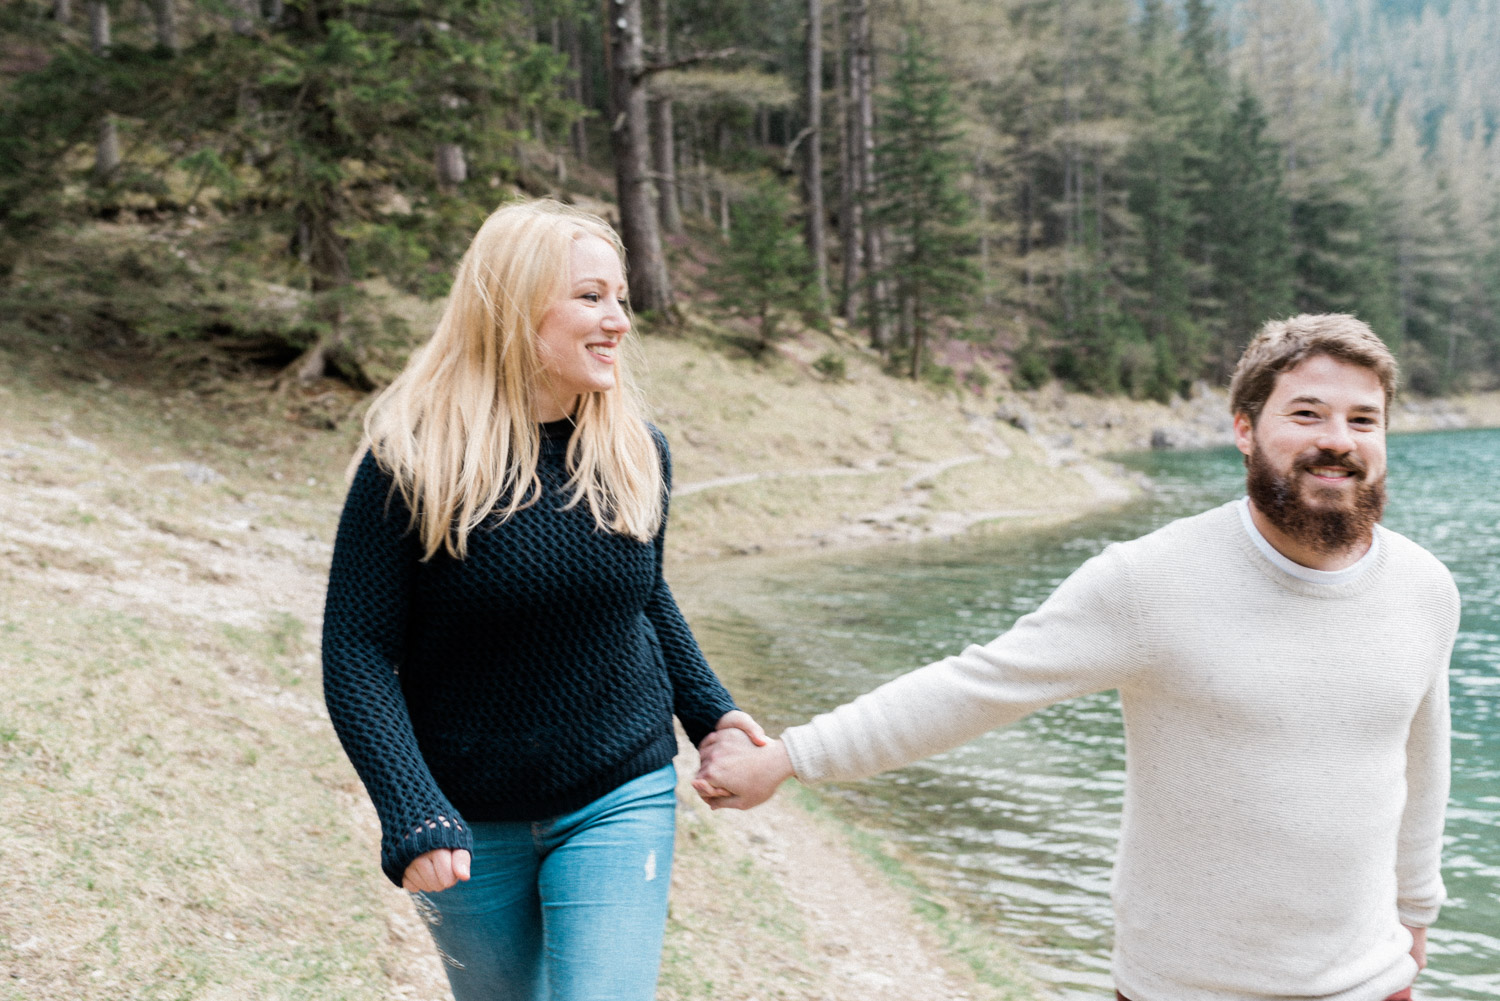 engagement session grüner see austria-18.jpg